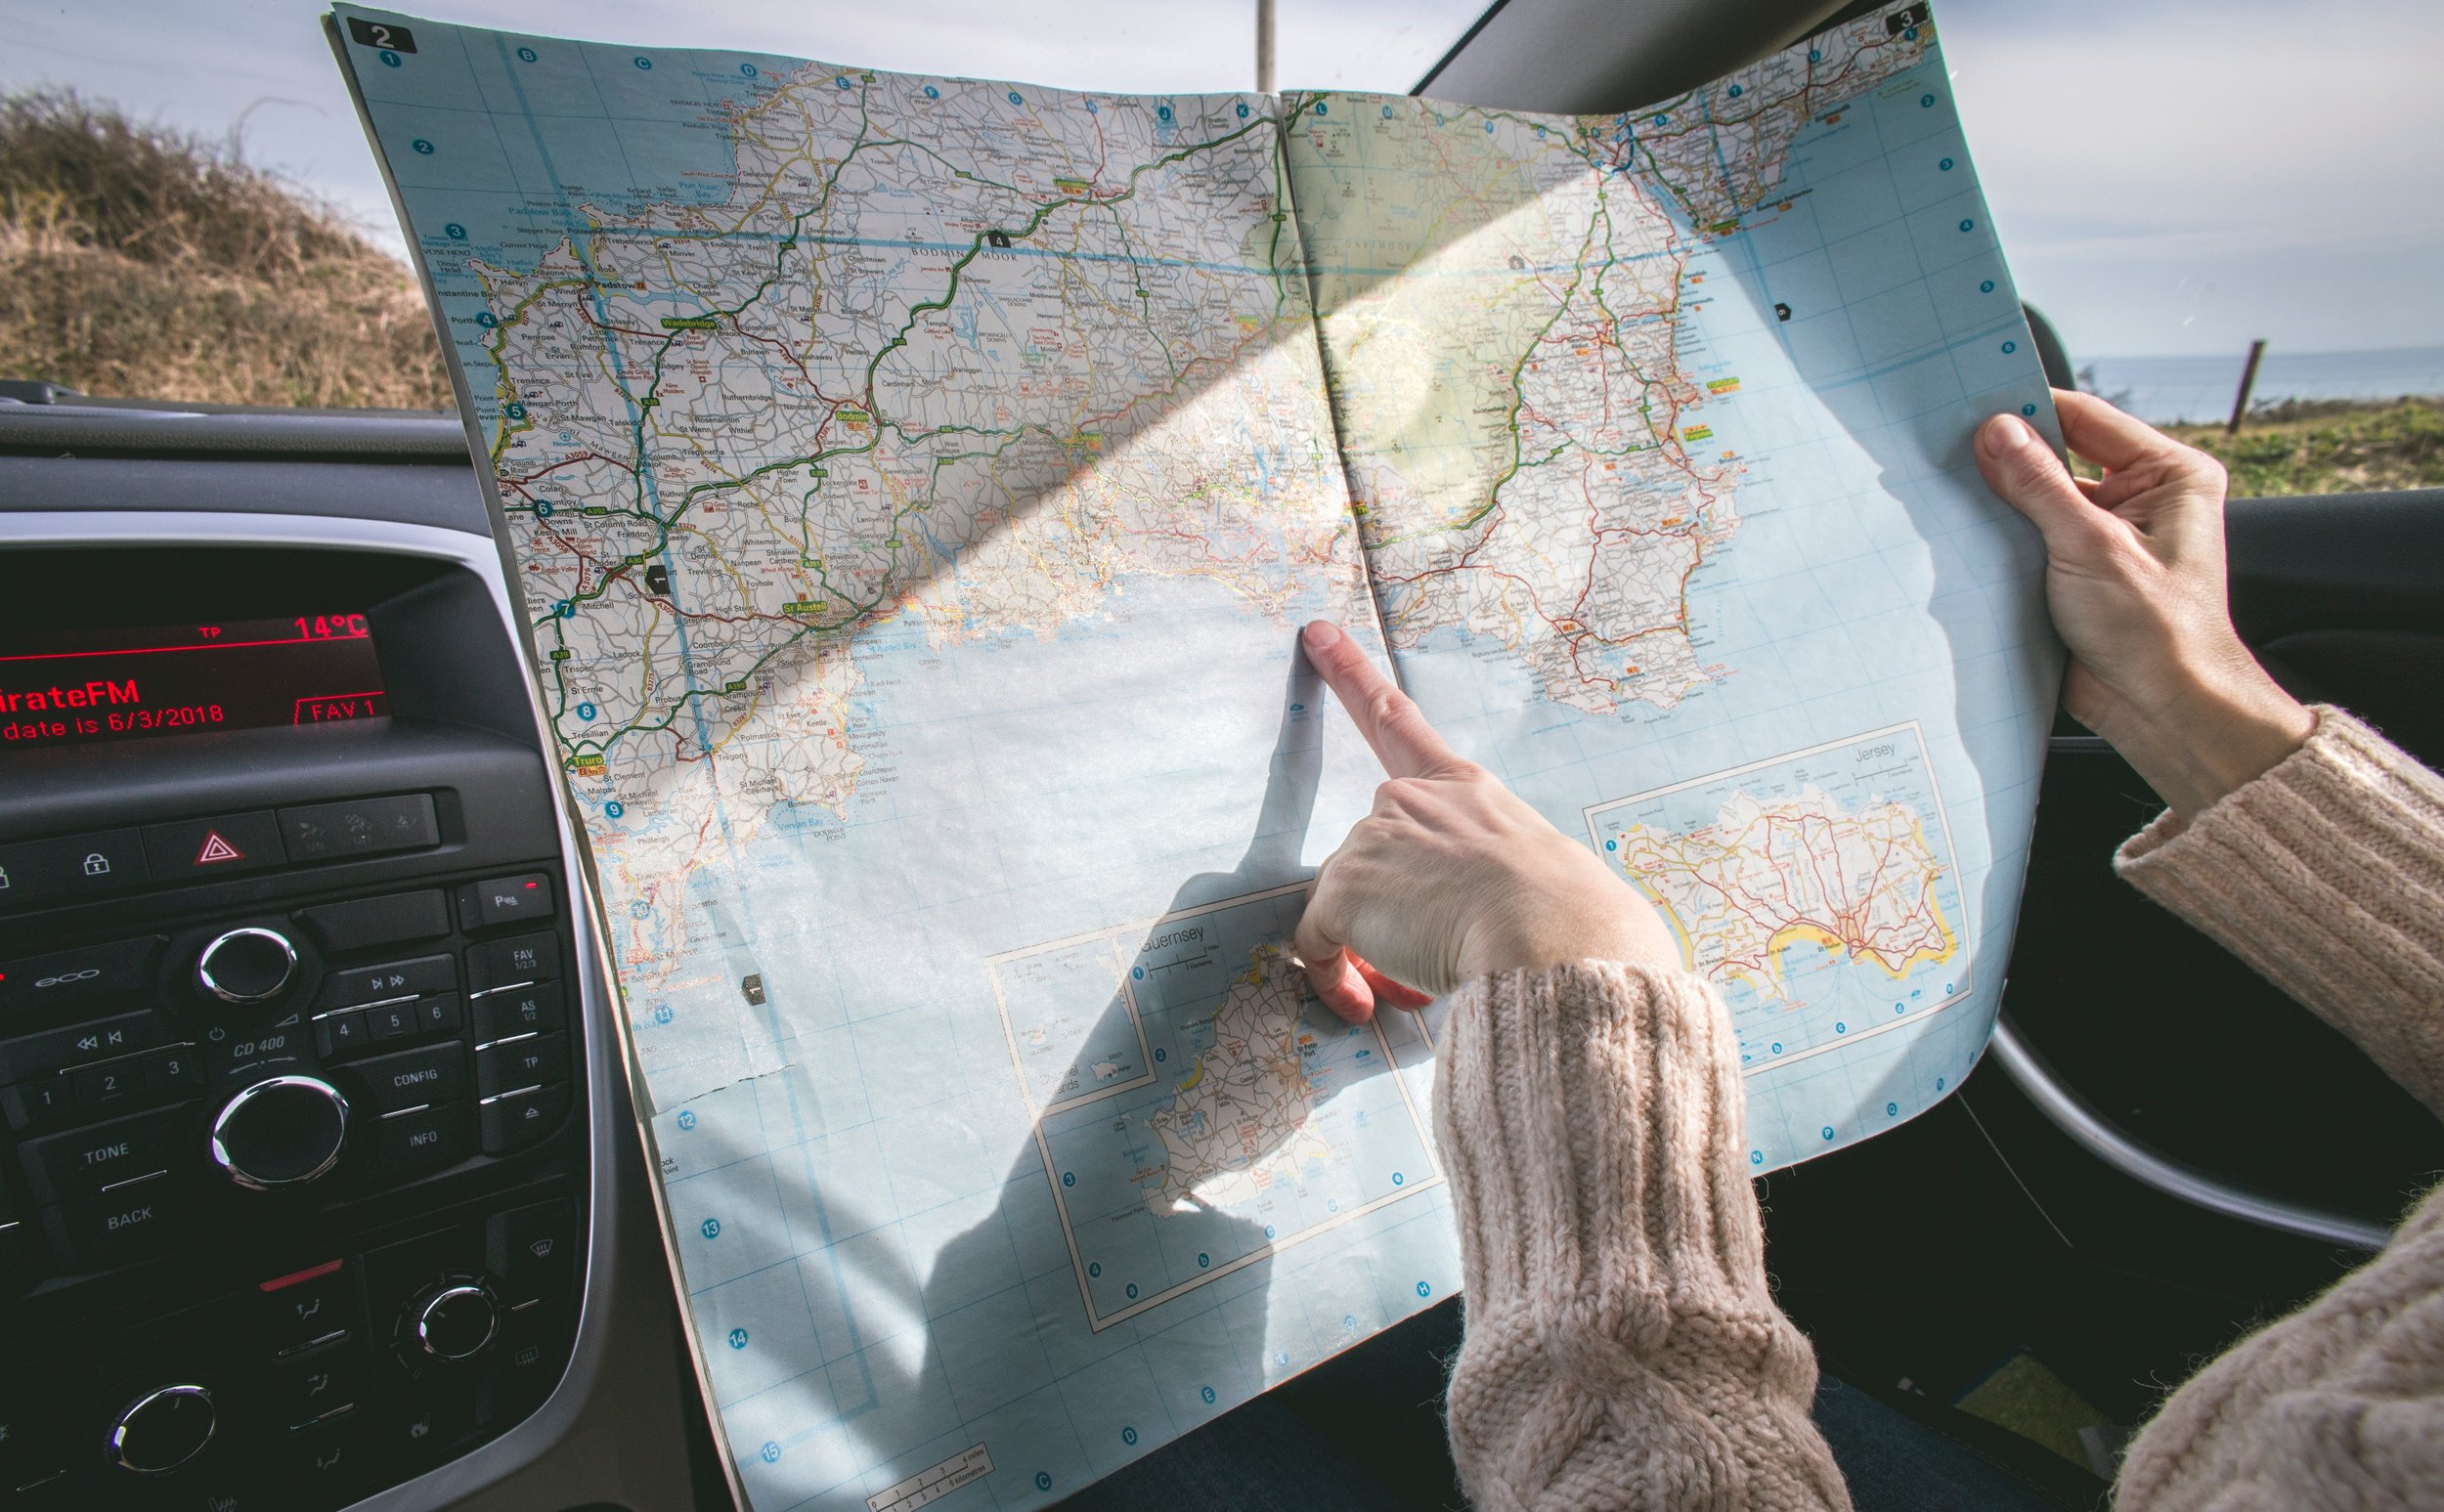 Are we there yet? - Mapping out your business journey is key to success.